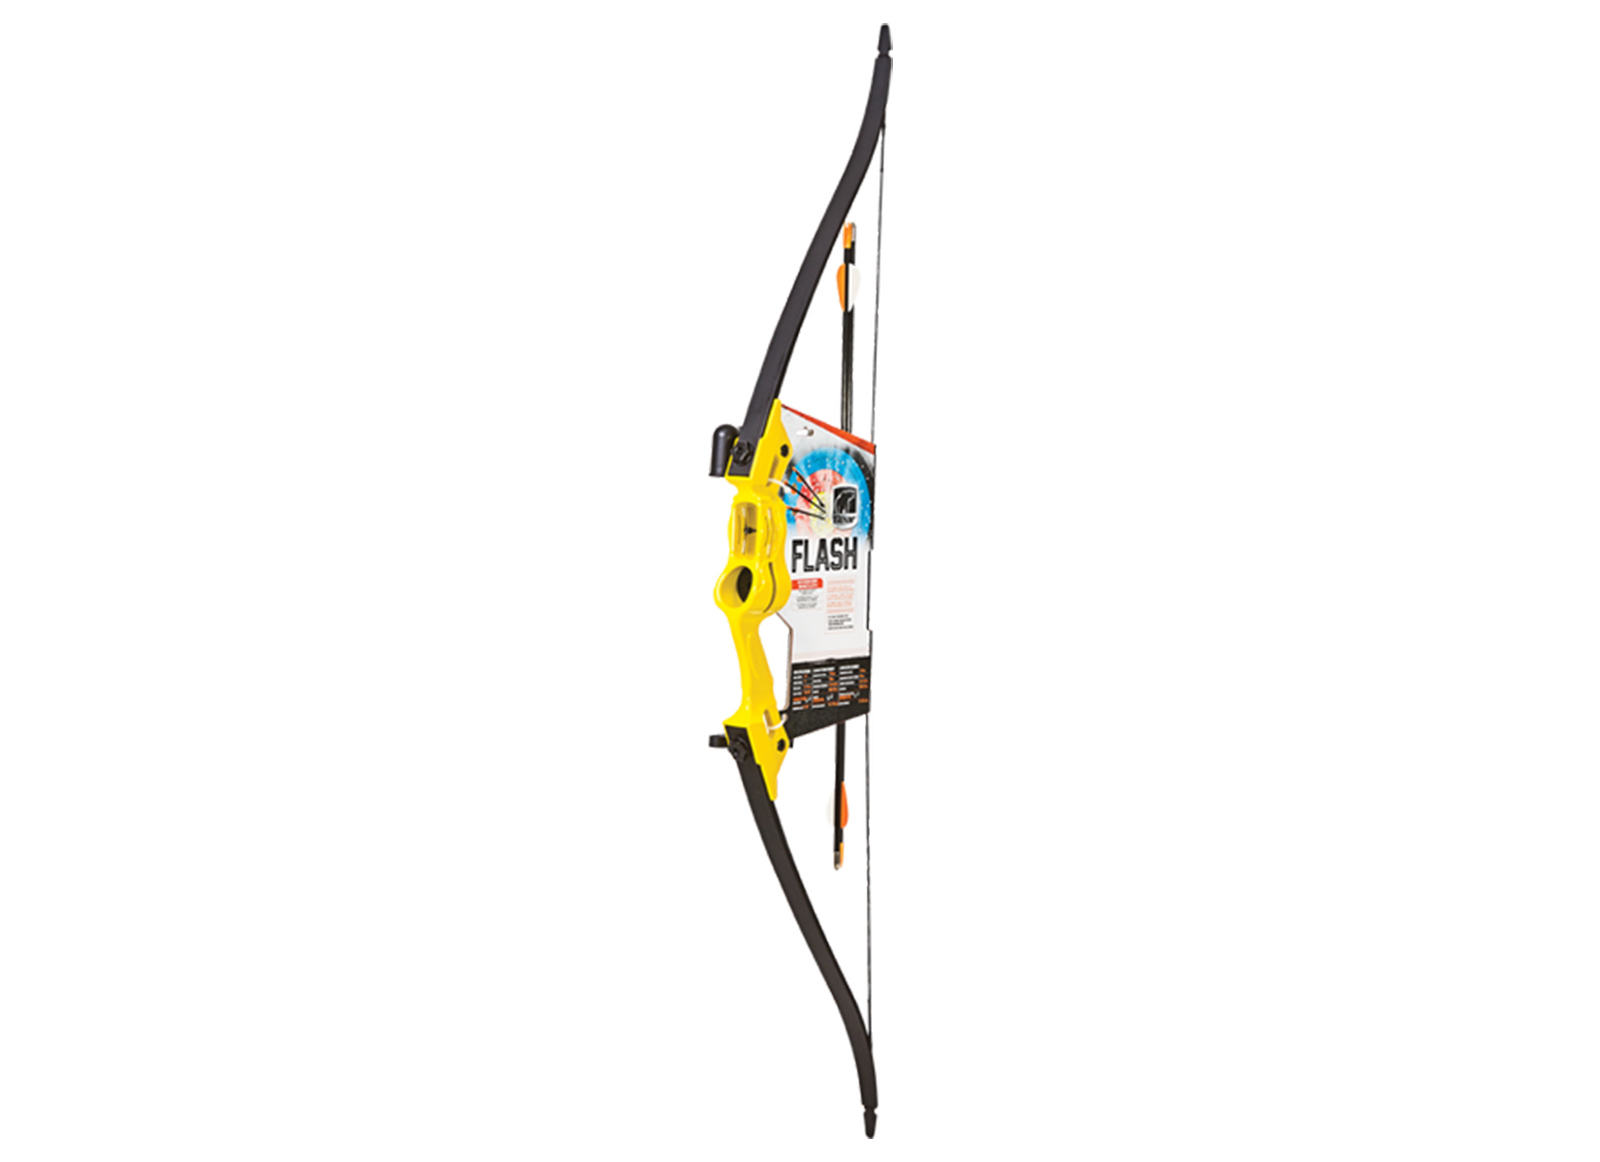 SET ARCO BEAR ARCHERY FLASH RH/LH